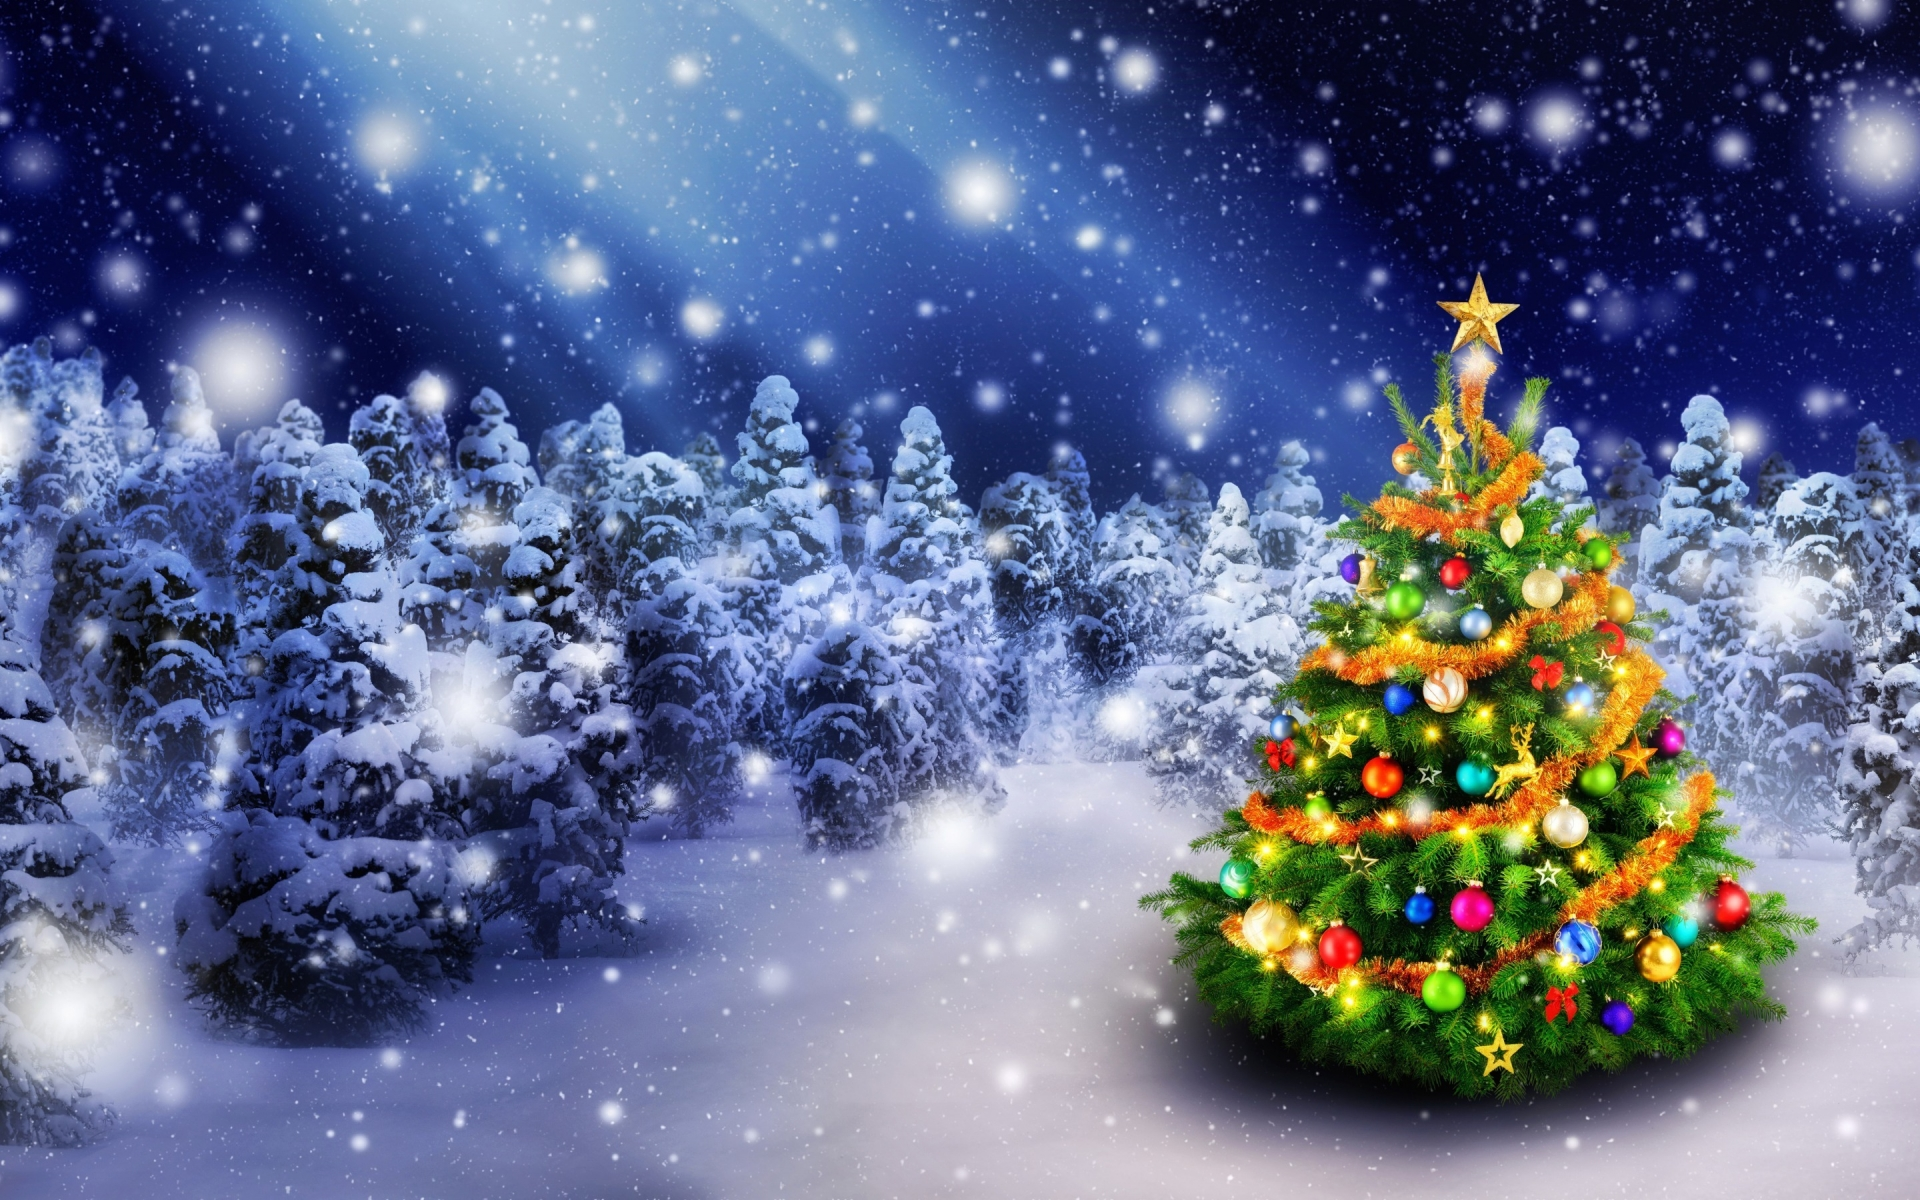 2016 Christmas Tree for 1920 x 1200 widescreen resolution